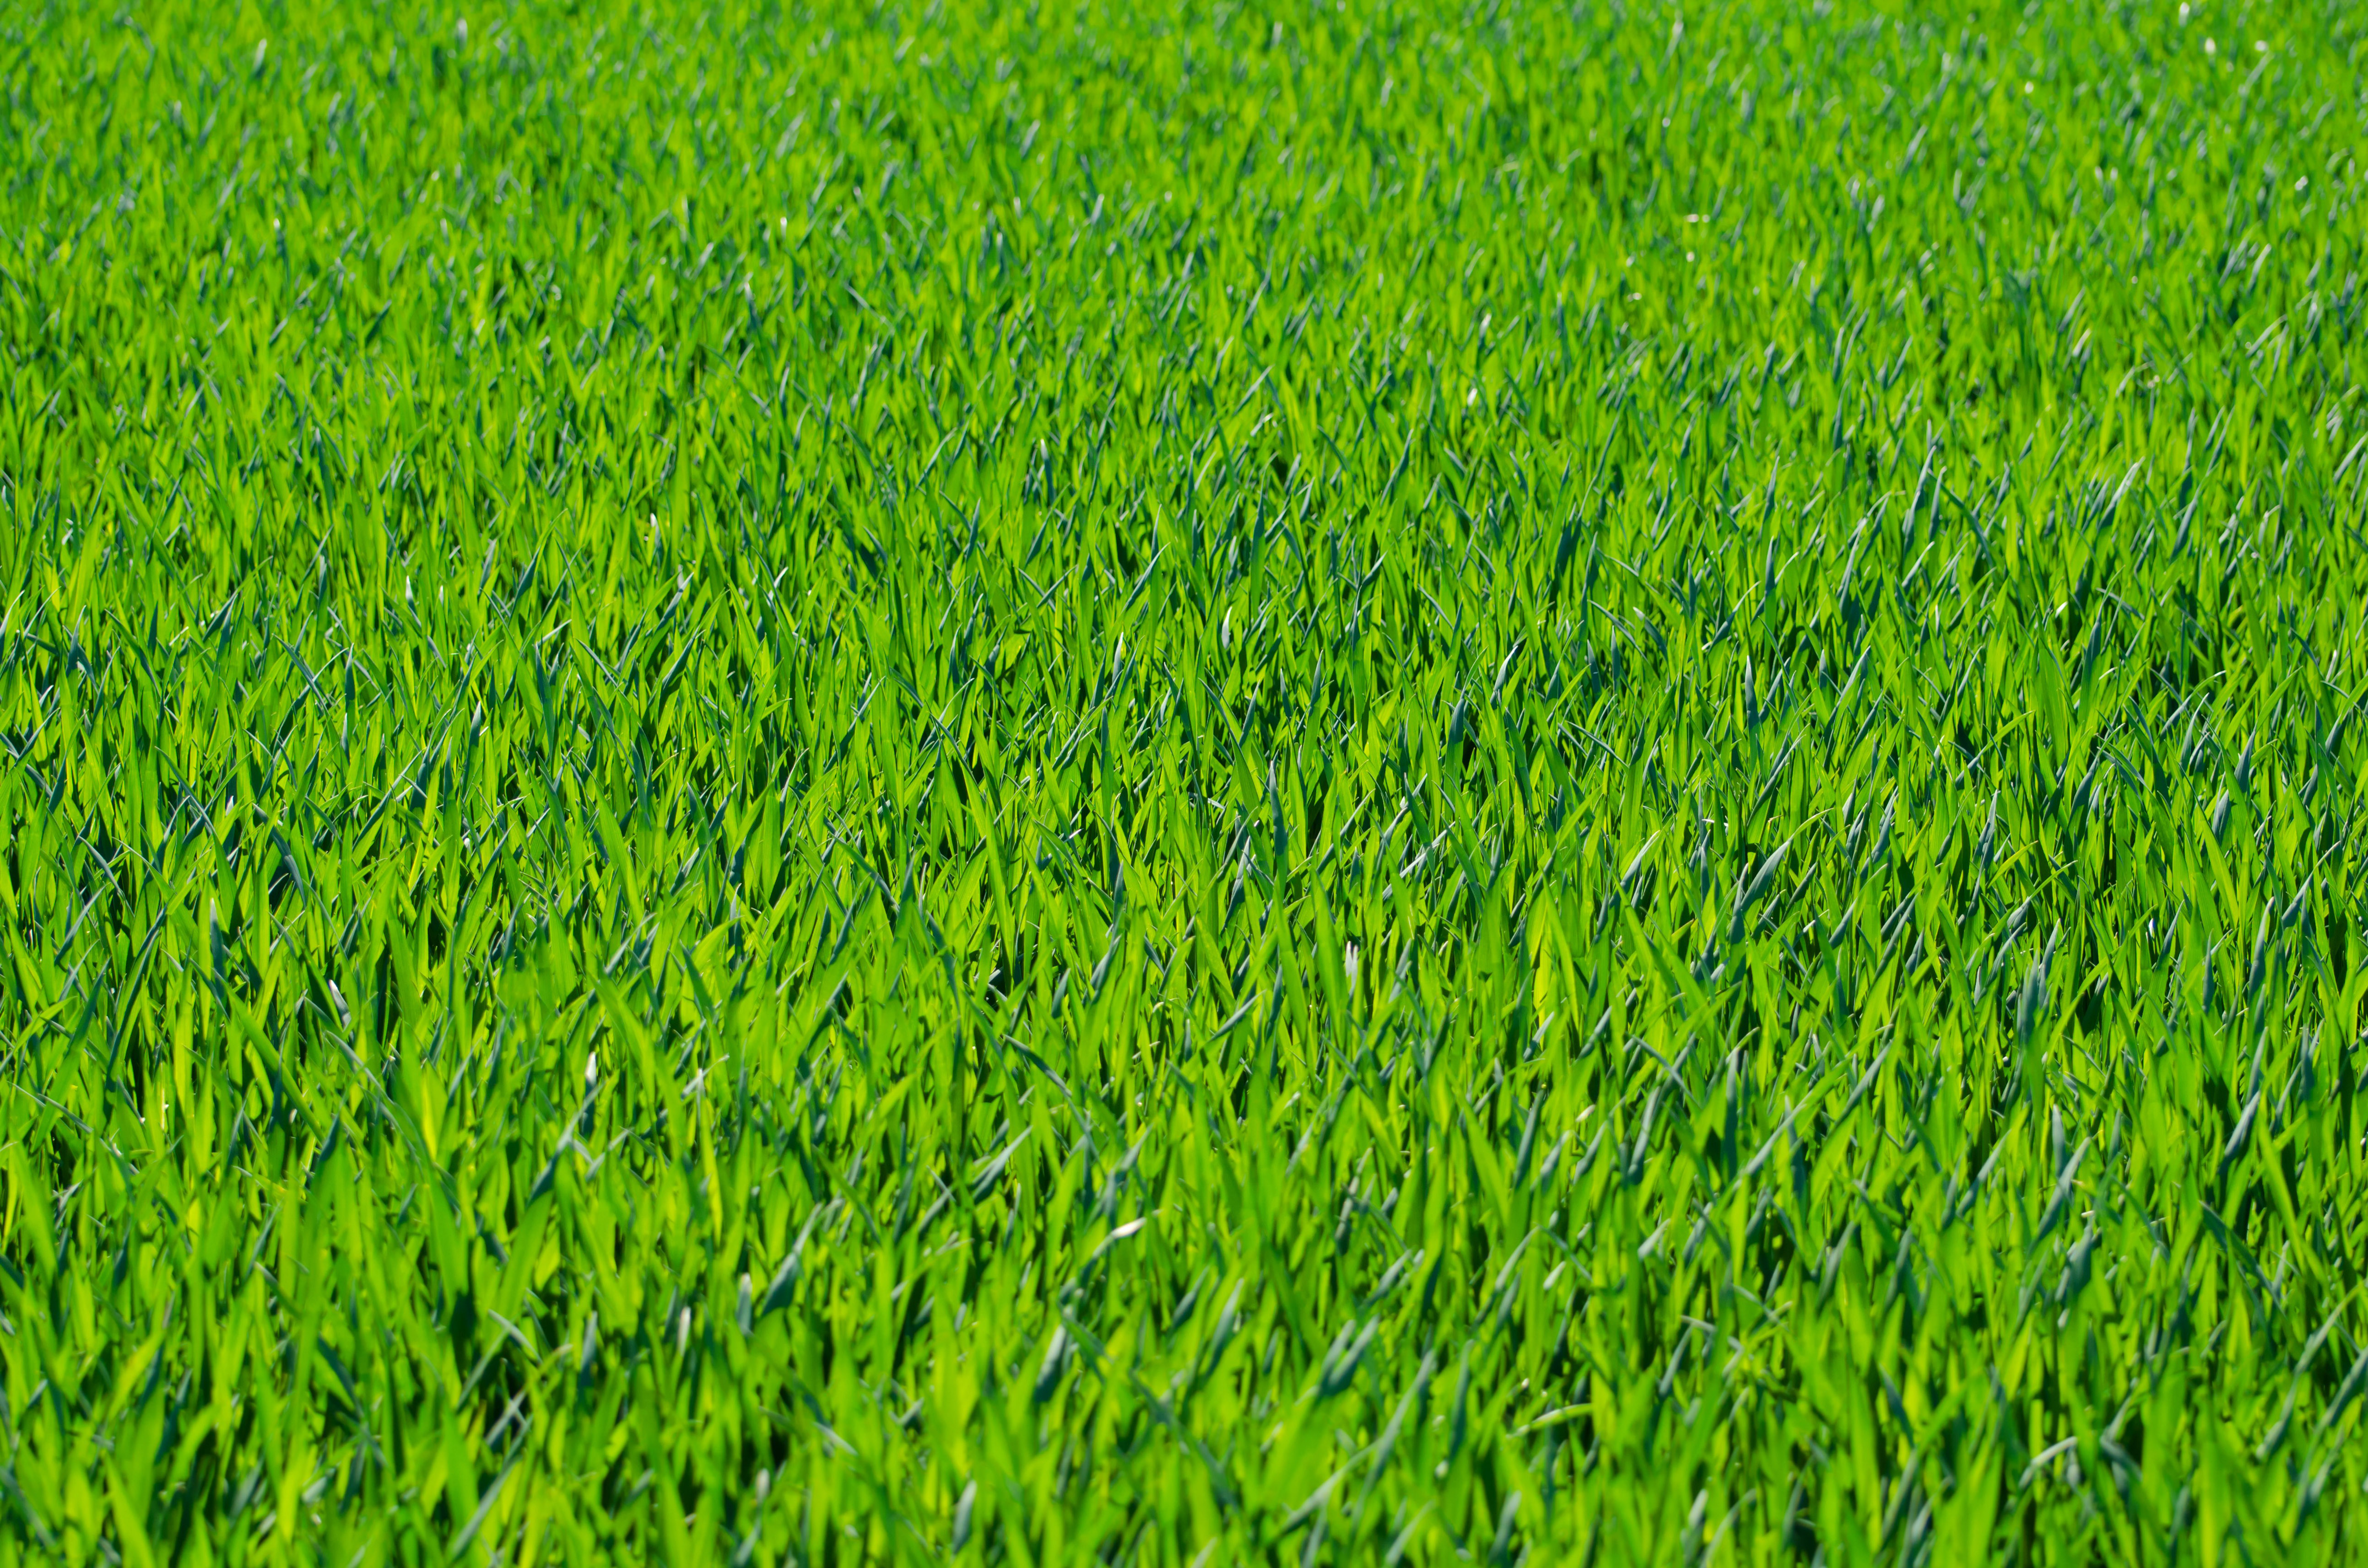 Seven Grass Textures or Lawn Background Images www 5174x3427